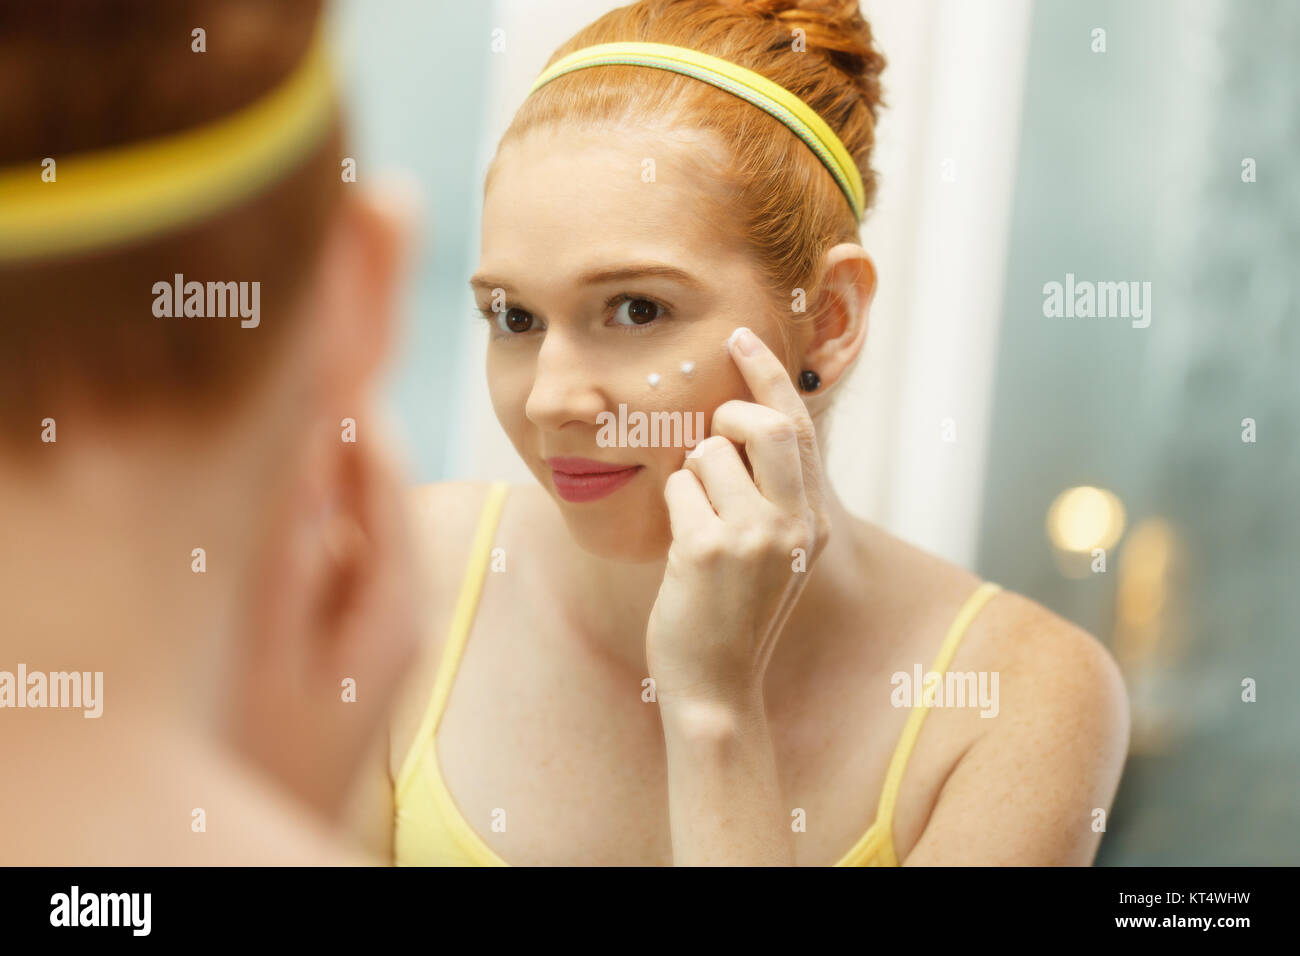 Redhead girl applying beauty cream in home bathroom at morning. Young woman taking care of her skin, looking at - Stock Image